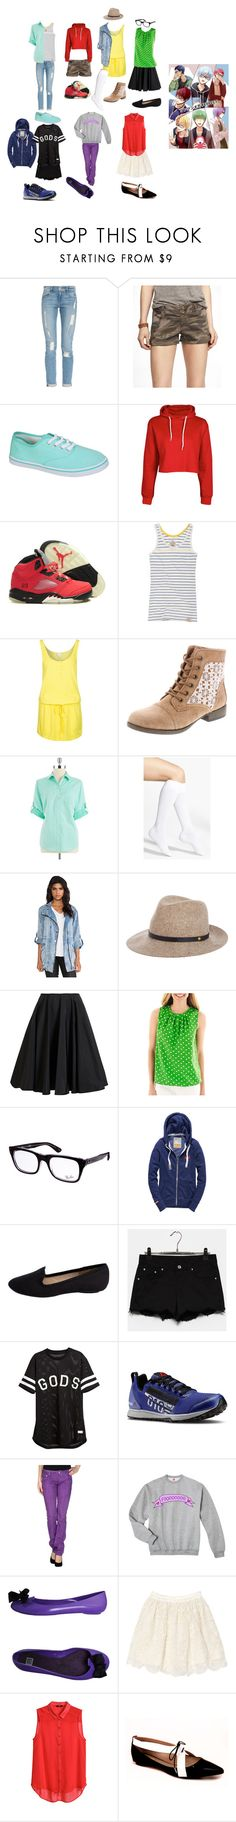 """""""Casual cospla Kuroko no Basket: inspired oufits (GoM + Kagami)"""" by drkittyvonscooper ❤ liked on Polyvore featuring Frame Denim, Express, Boohoo, Superdry, Bench, Jones New York, Nordstrom, Evil Twin, rag & bone and Giambattista Valli"""